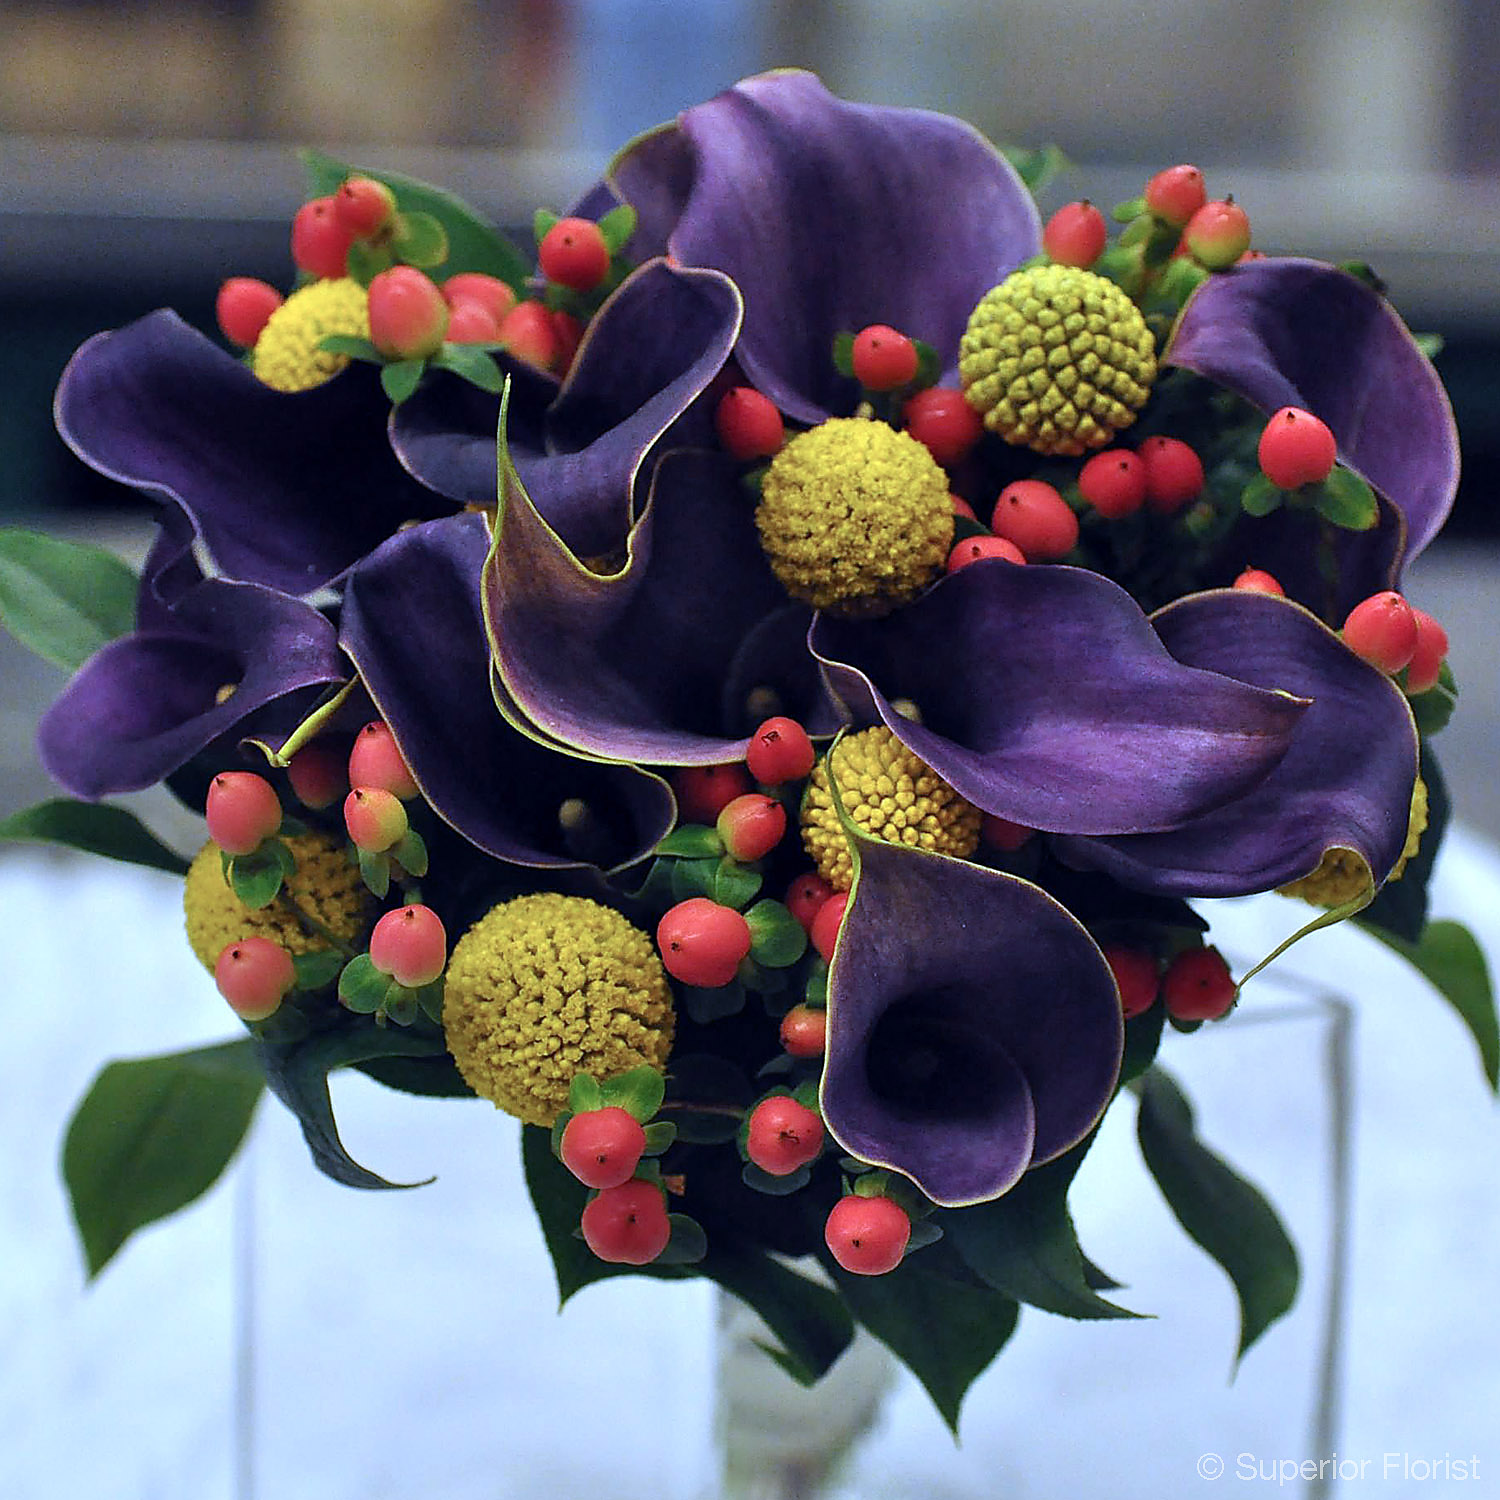 Superior Florist – Weddings – Personal Flowers: Hand tied bouquet of purple Callas, Hypericum and Craspedia.